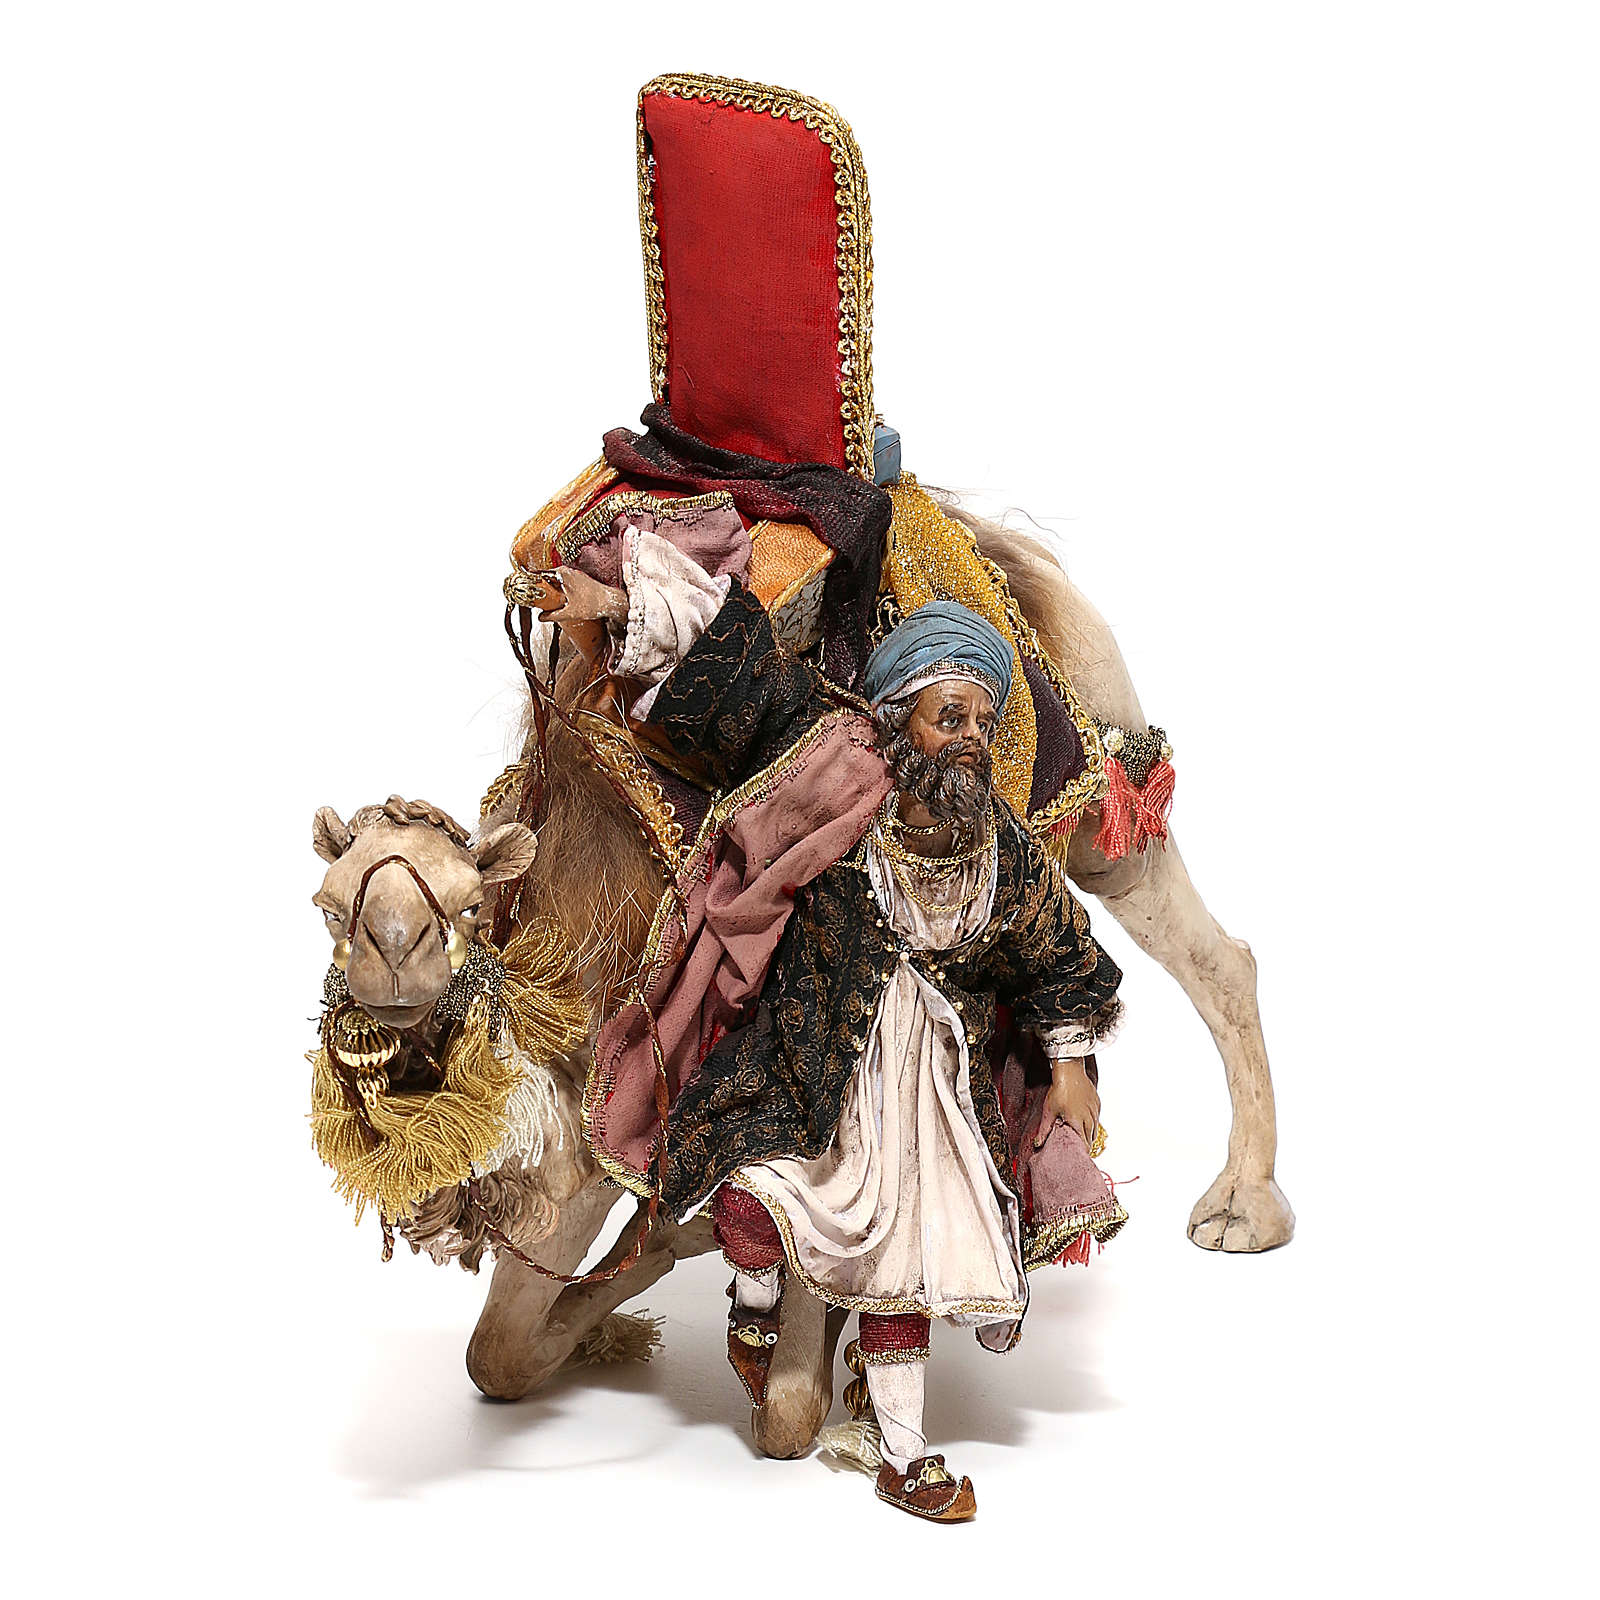 Nativity scene figurine, King getting off his camel by Angela Tripi 18 cm 4